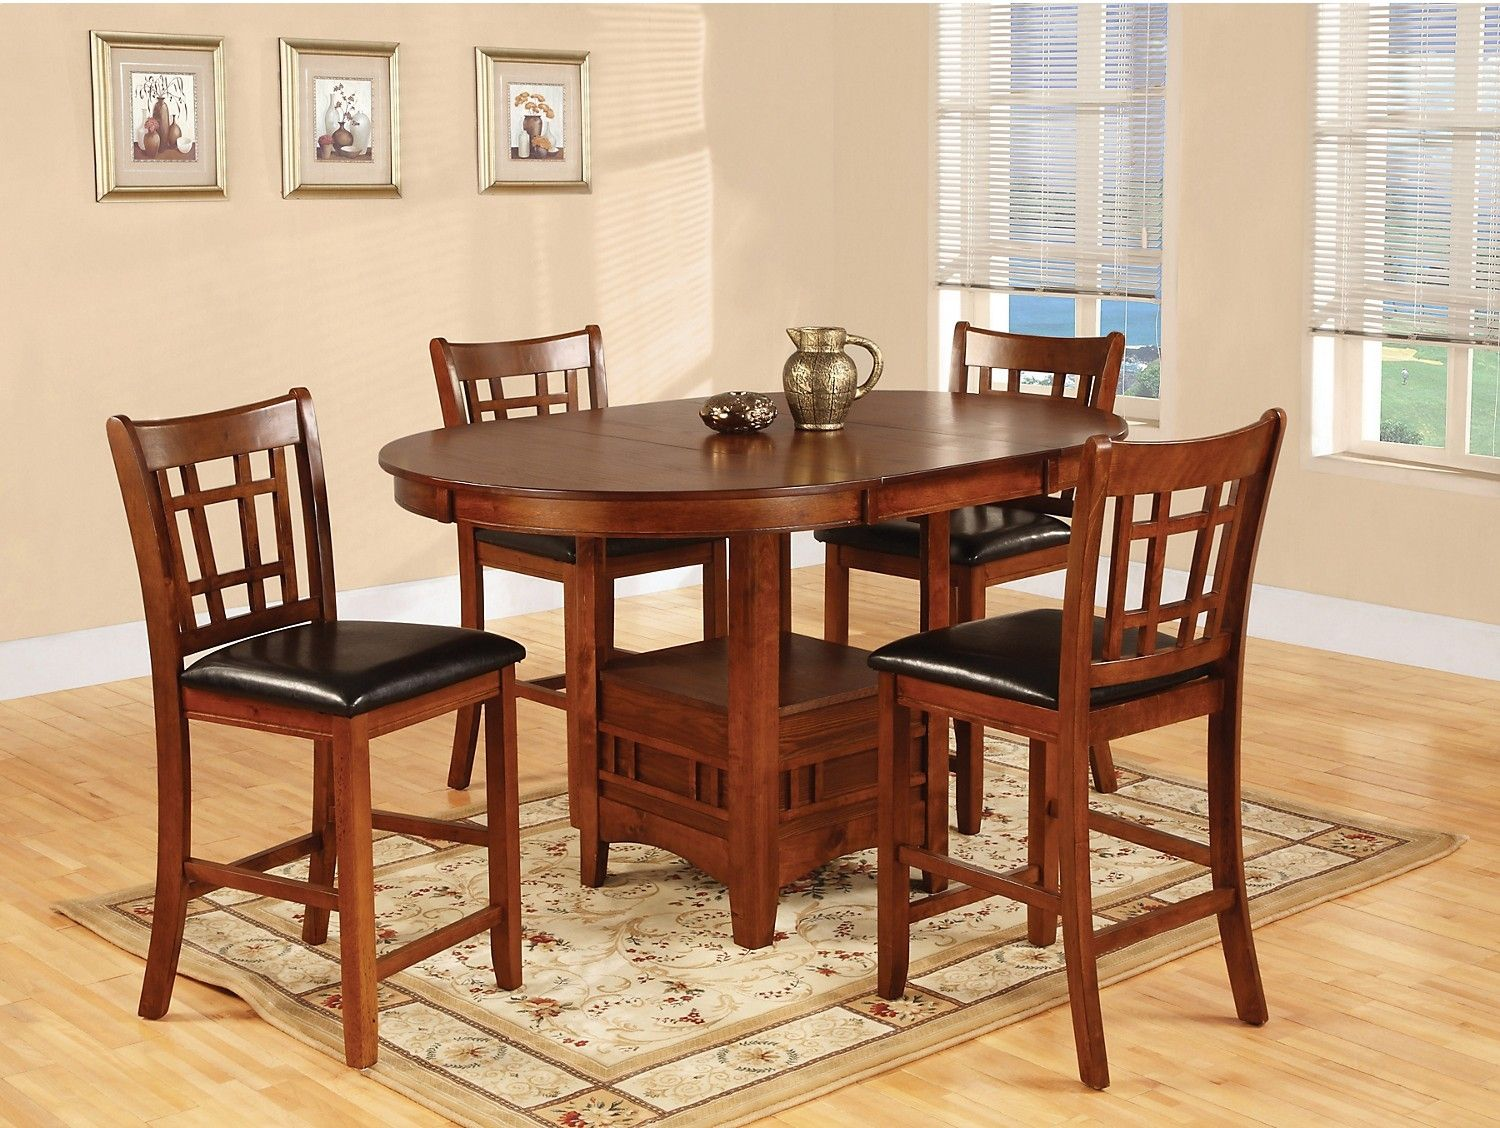 Dalton 5 Piece Oak Counterheight Dining Package  Bricks Mesmerizing Single Dining Room Chairs Inspiration Design